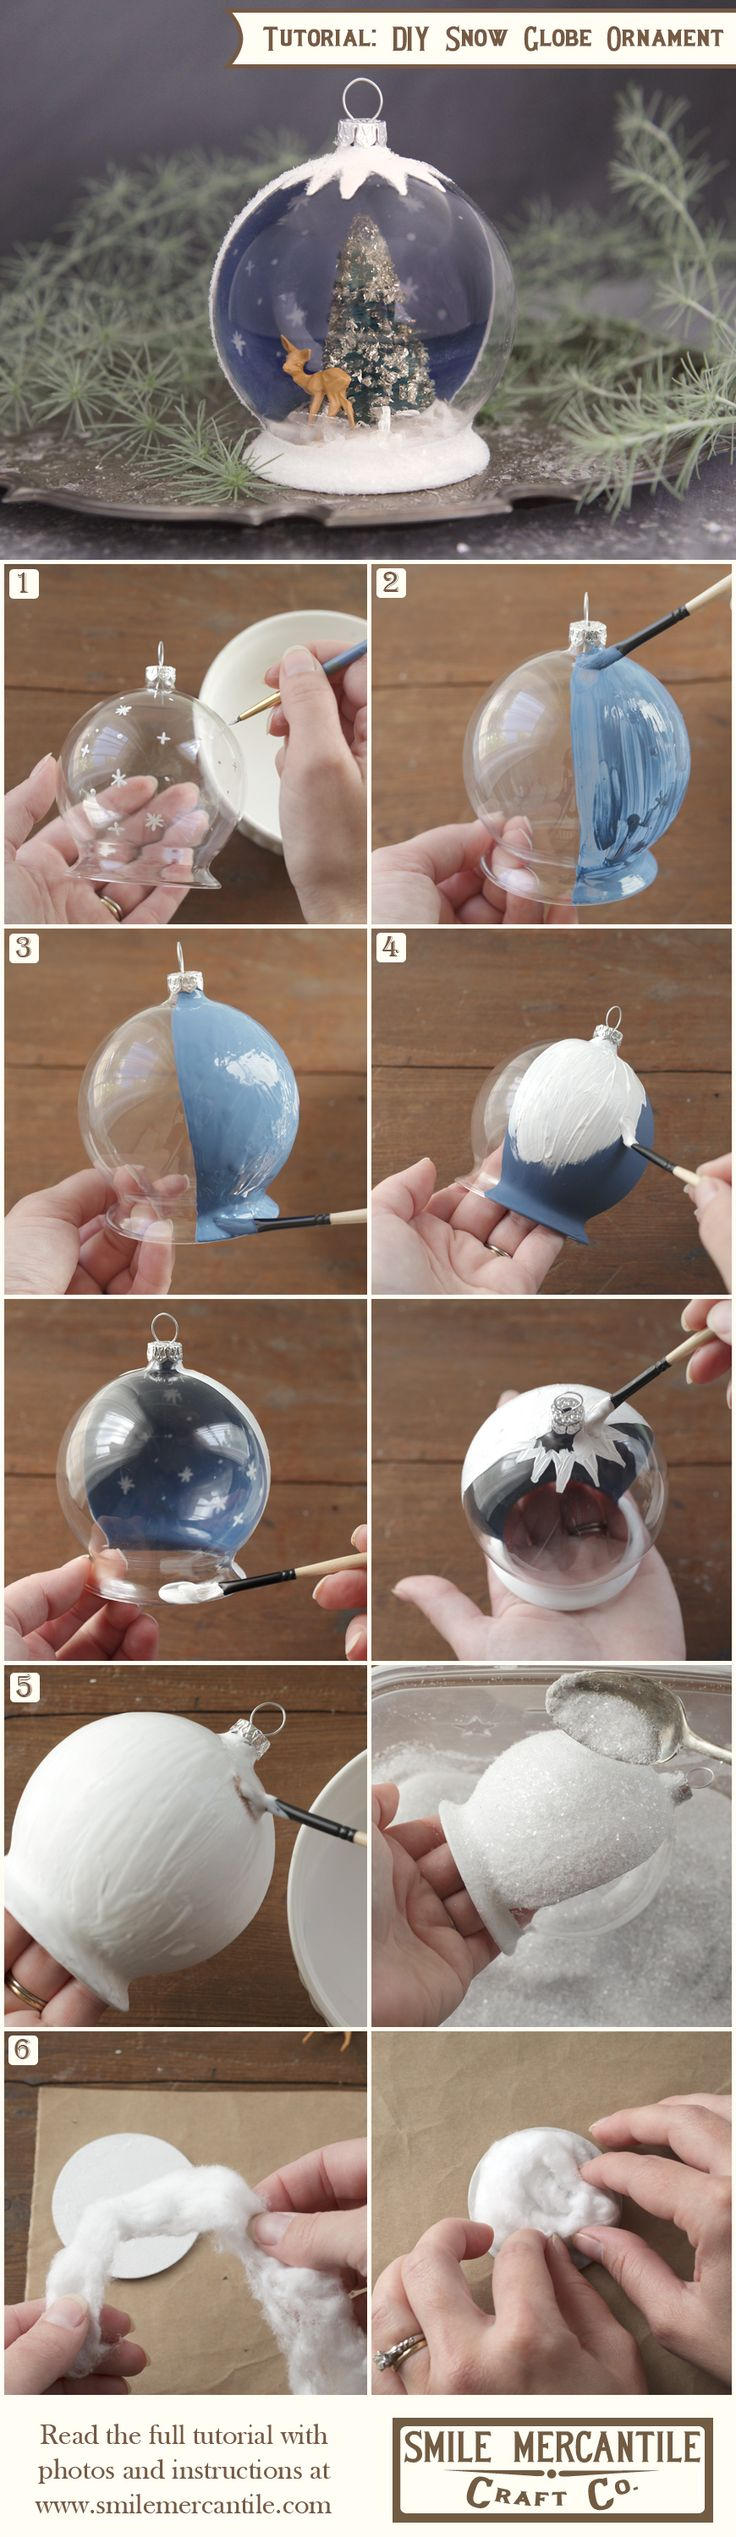 Tutorial: Christmas Snow Globe Ornament                                                                                                                                                      More